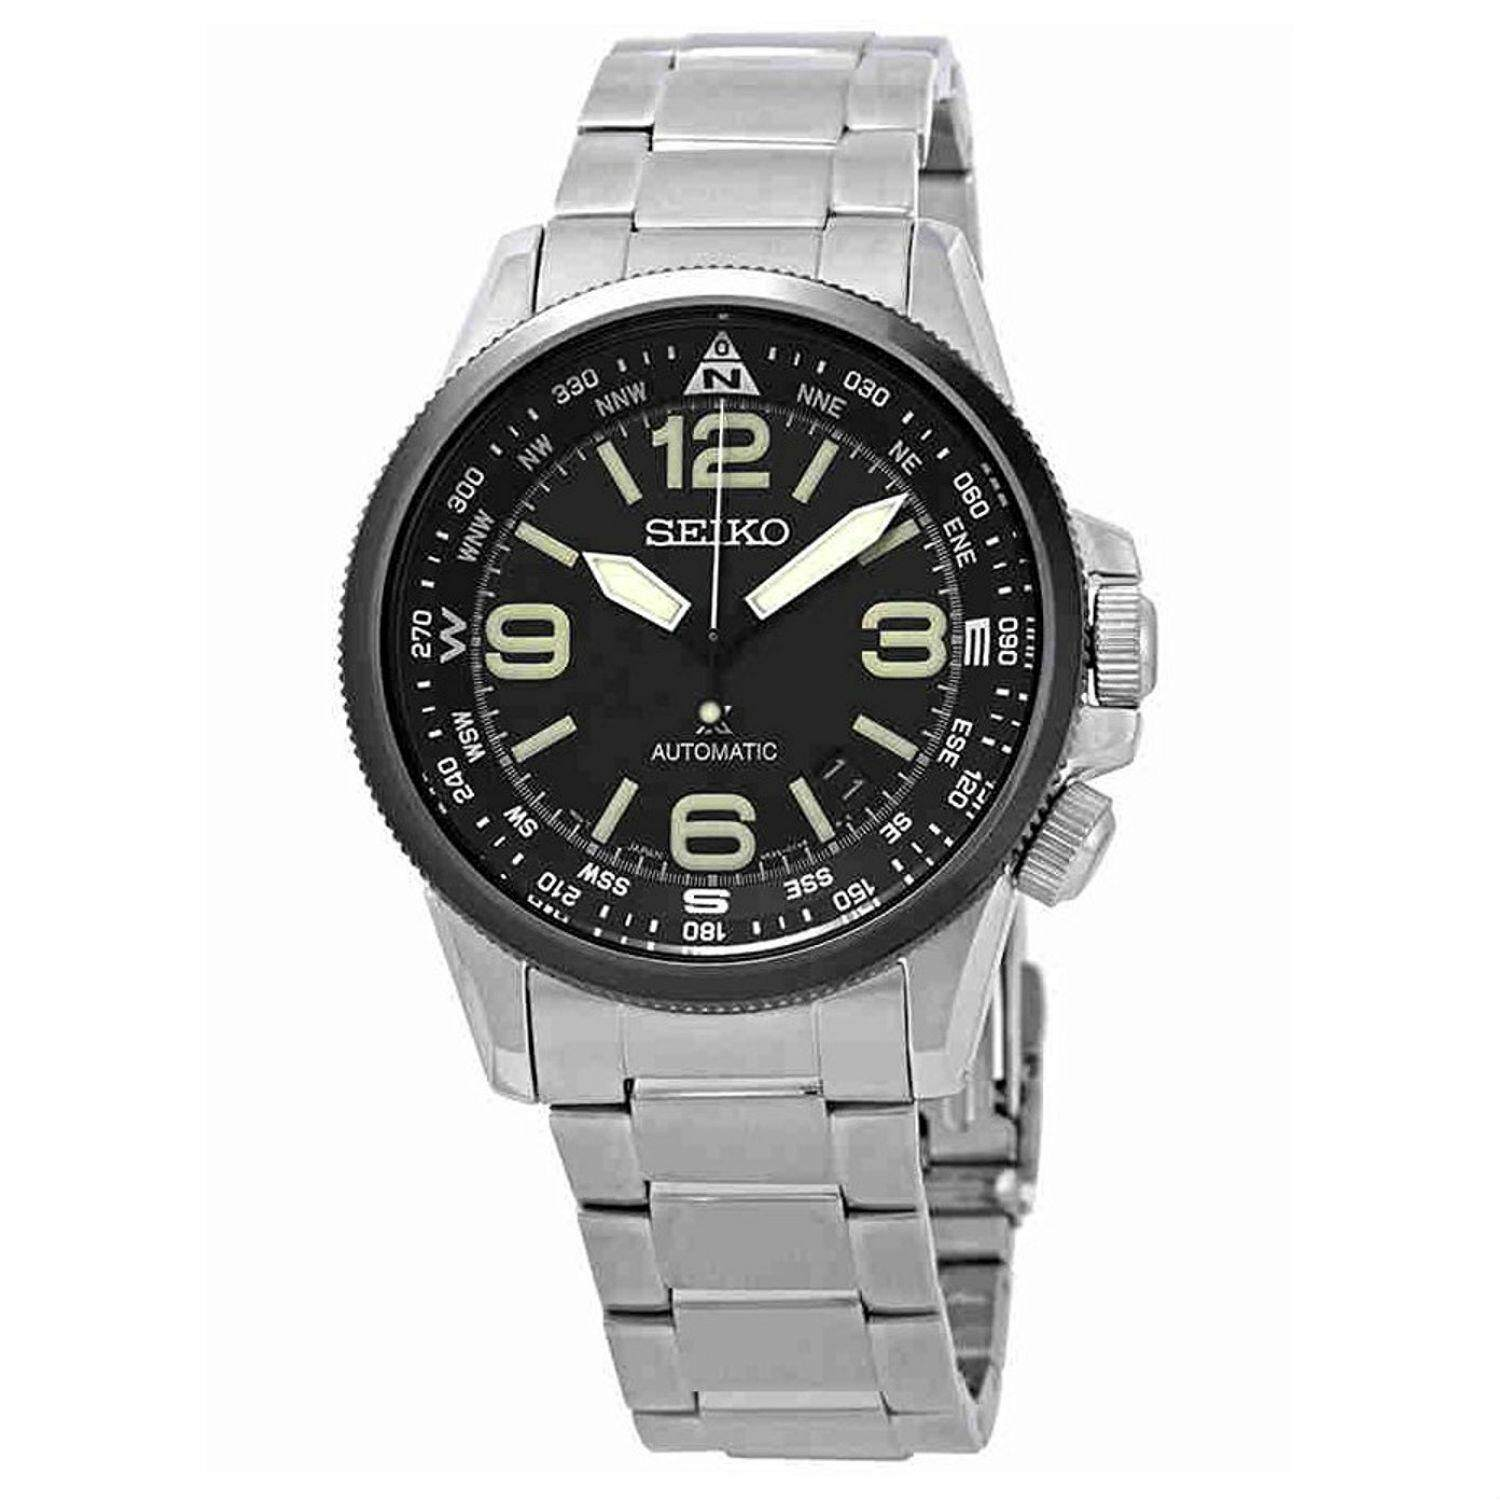 Seiko Automatic Mens Watches Titanium Price In Singapore Prospex Sbdc029j Shogun Black Dial Watchsrpa71j1 Intl